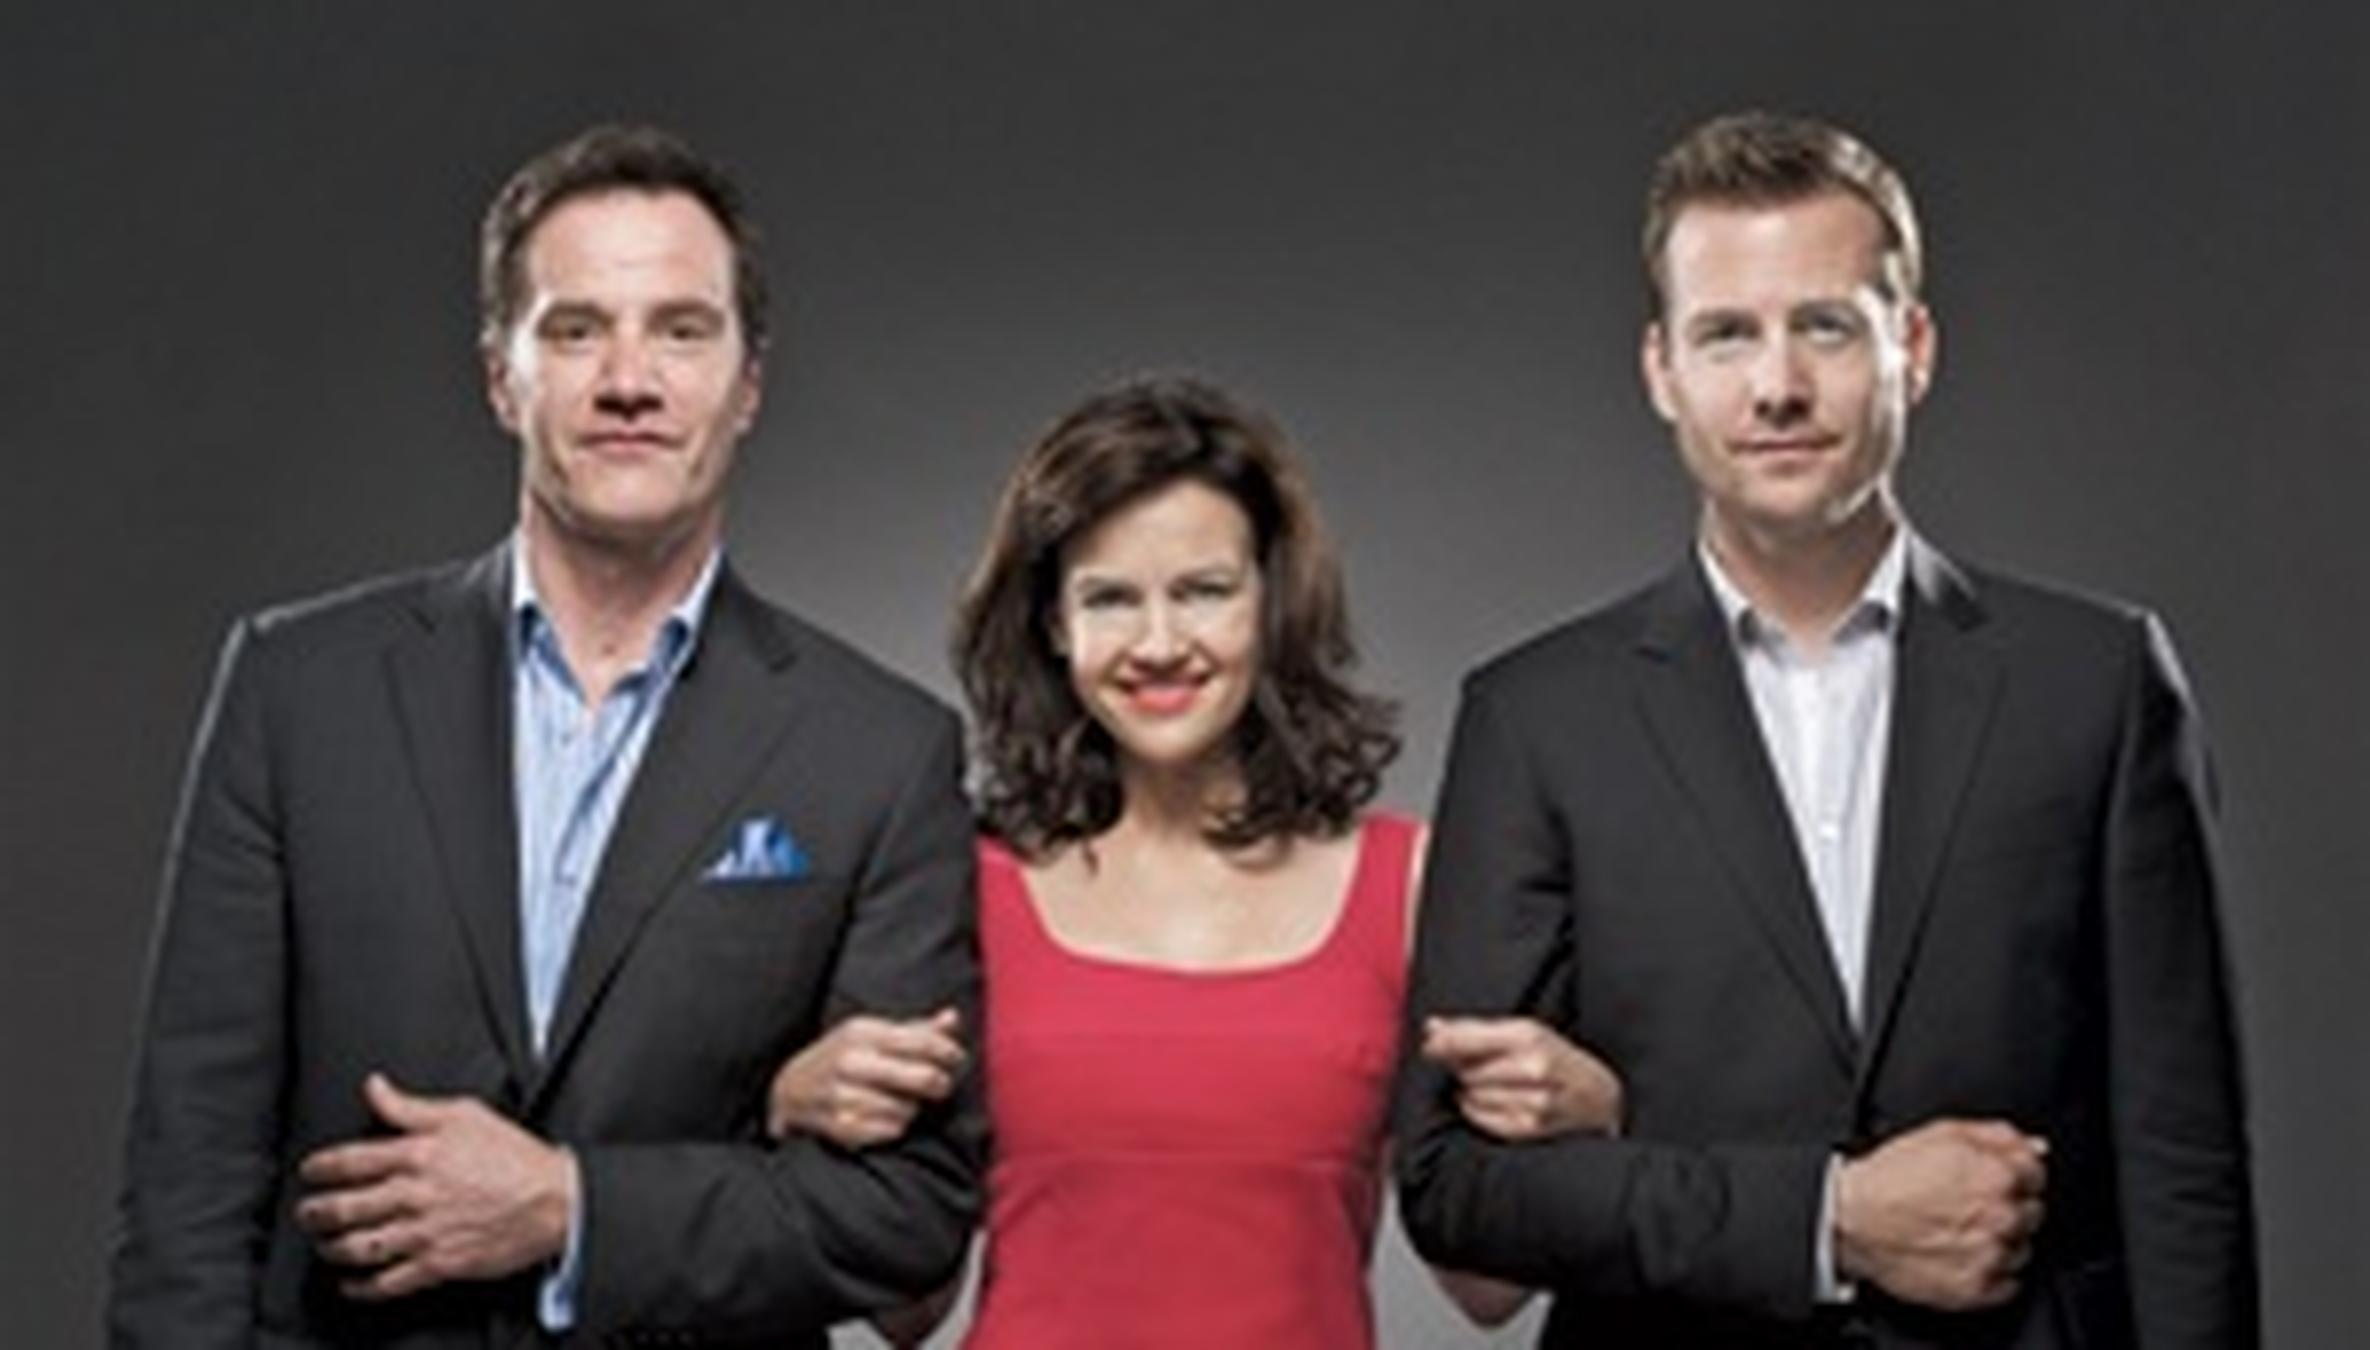 A Roundtable With Tim Dekay Carla Gugino And Gabriel Macht Tim dekay stars as peter burke in usa network's original series white collar. tim dekay carla gugino and gabriel macht